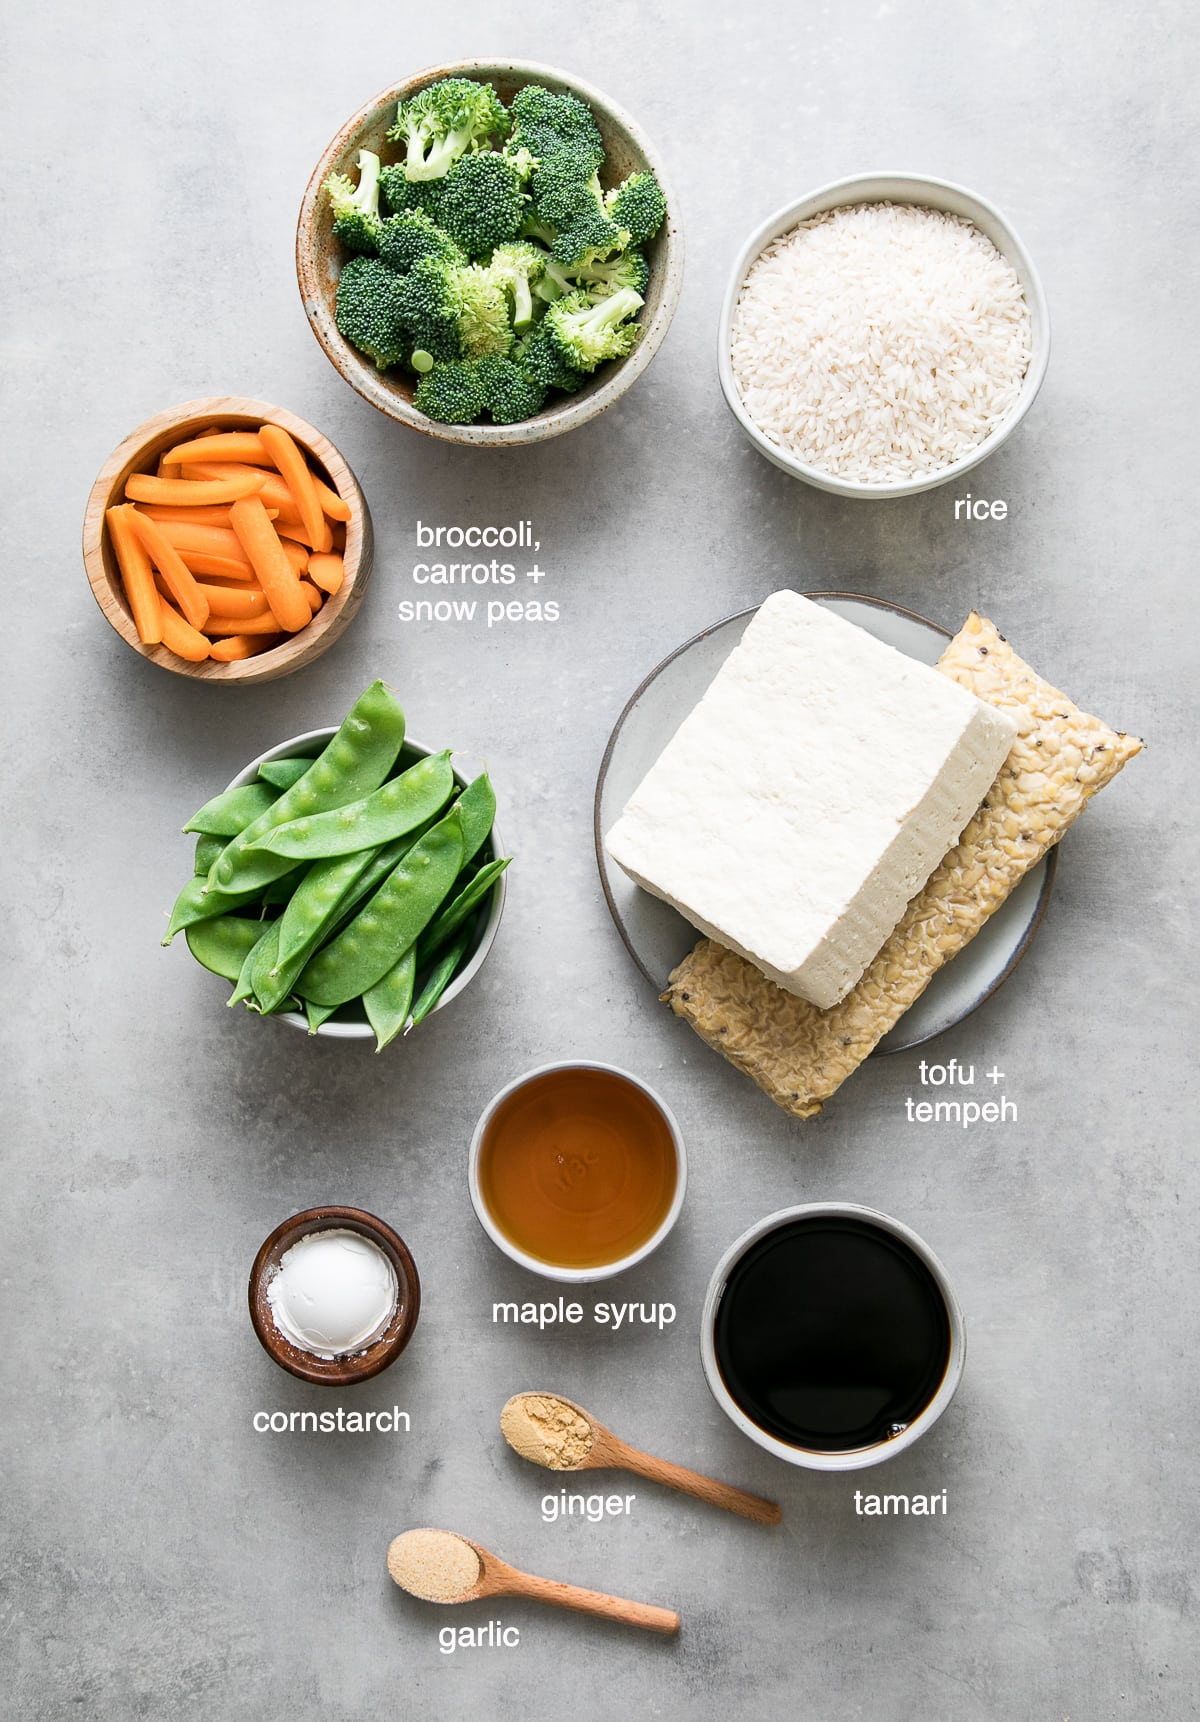 top down view of ingredients used to make teriyaki tofu-tempeh casserole recipe.